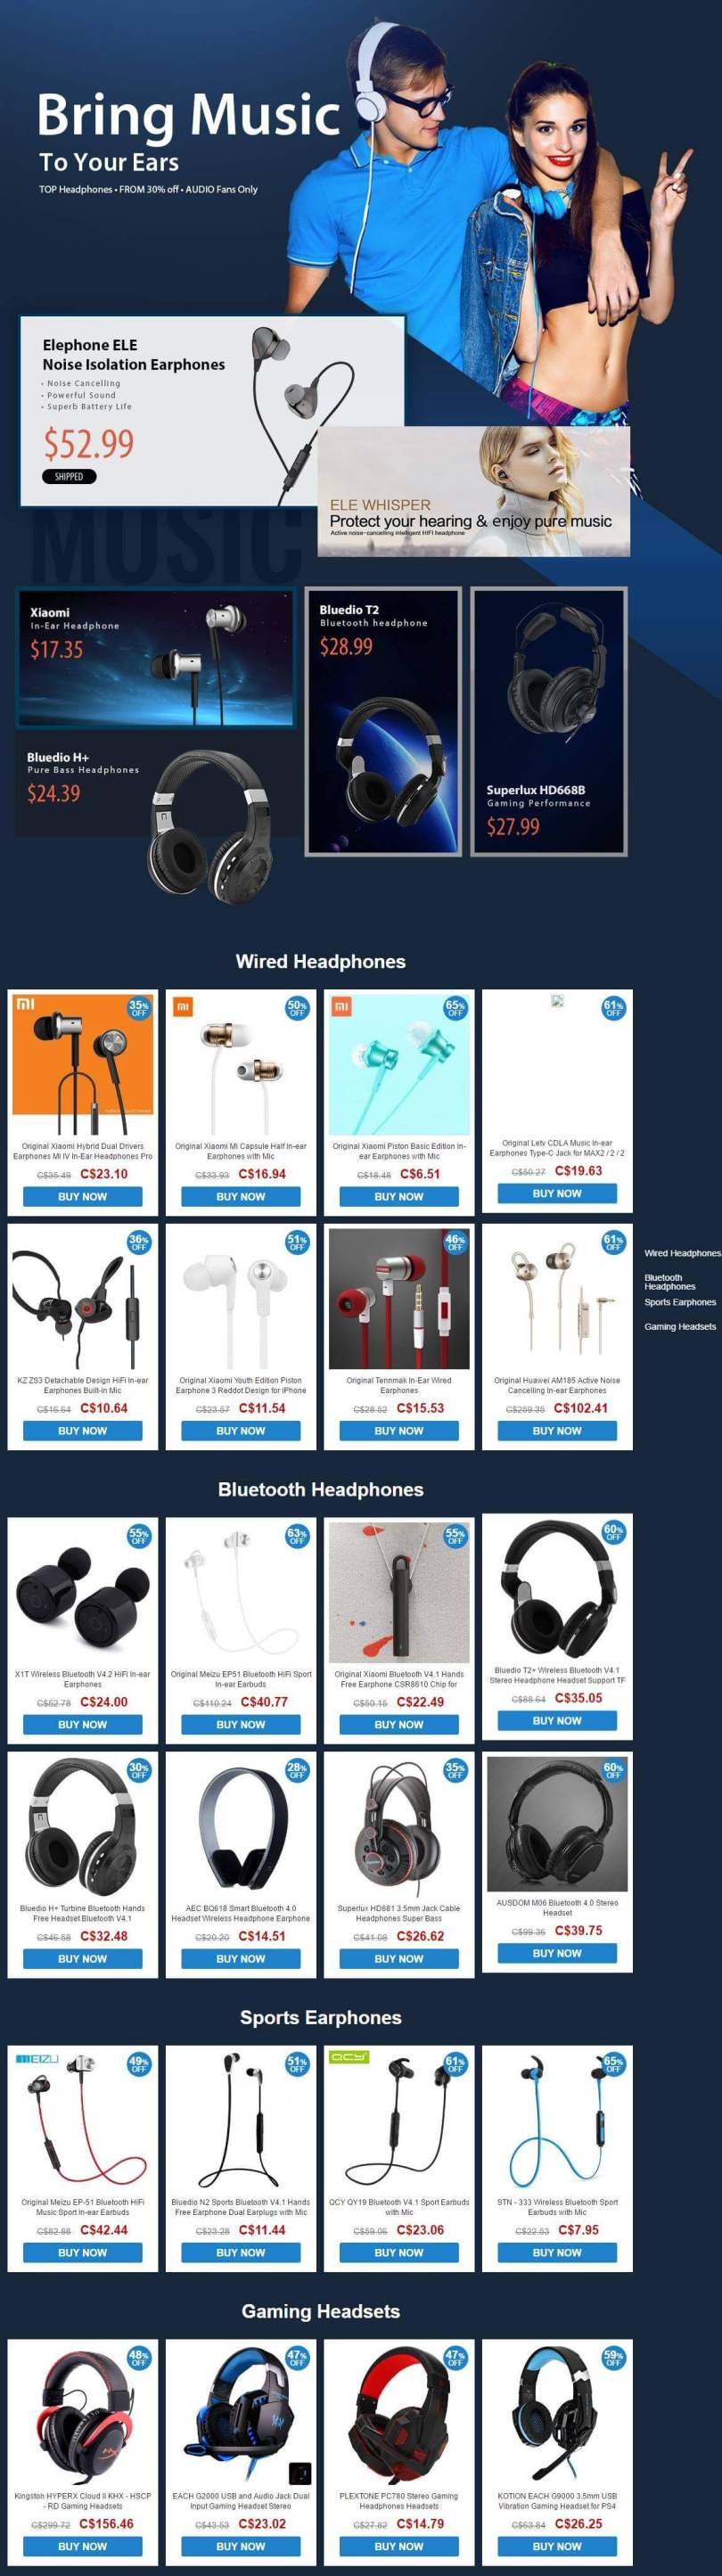 full-product-list-top-headphones-and-earphones-promotional-sale-1